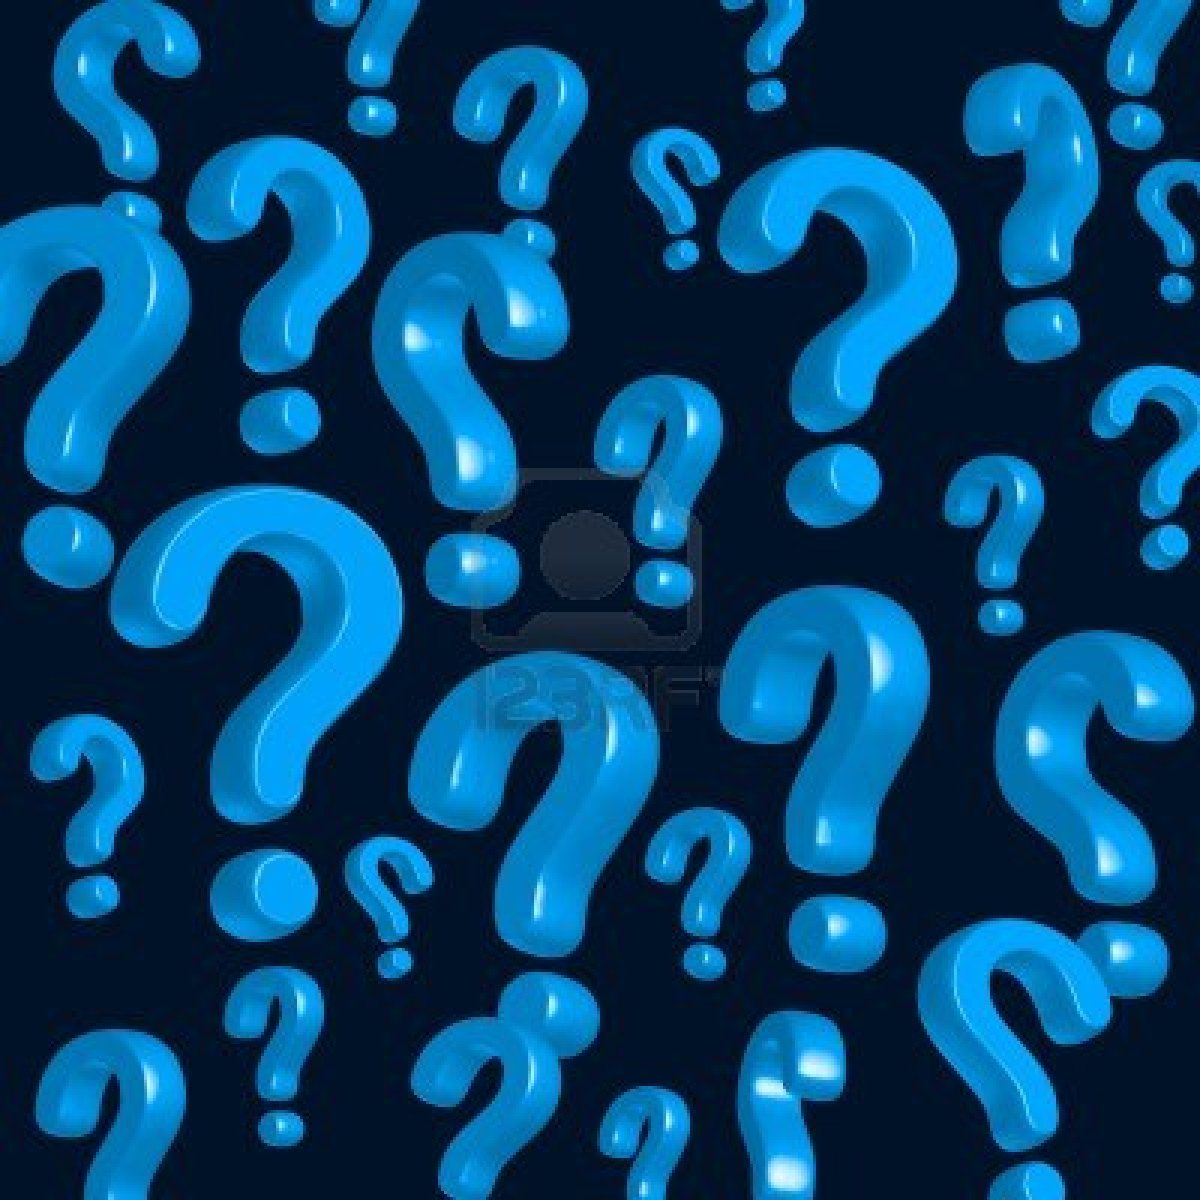 10513572-wallpaper-of-blue-question-marks